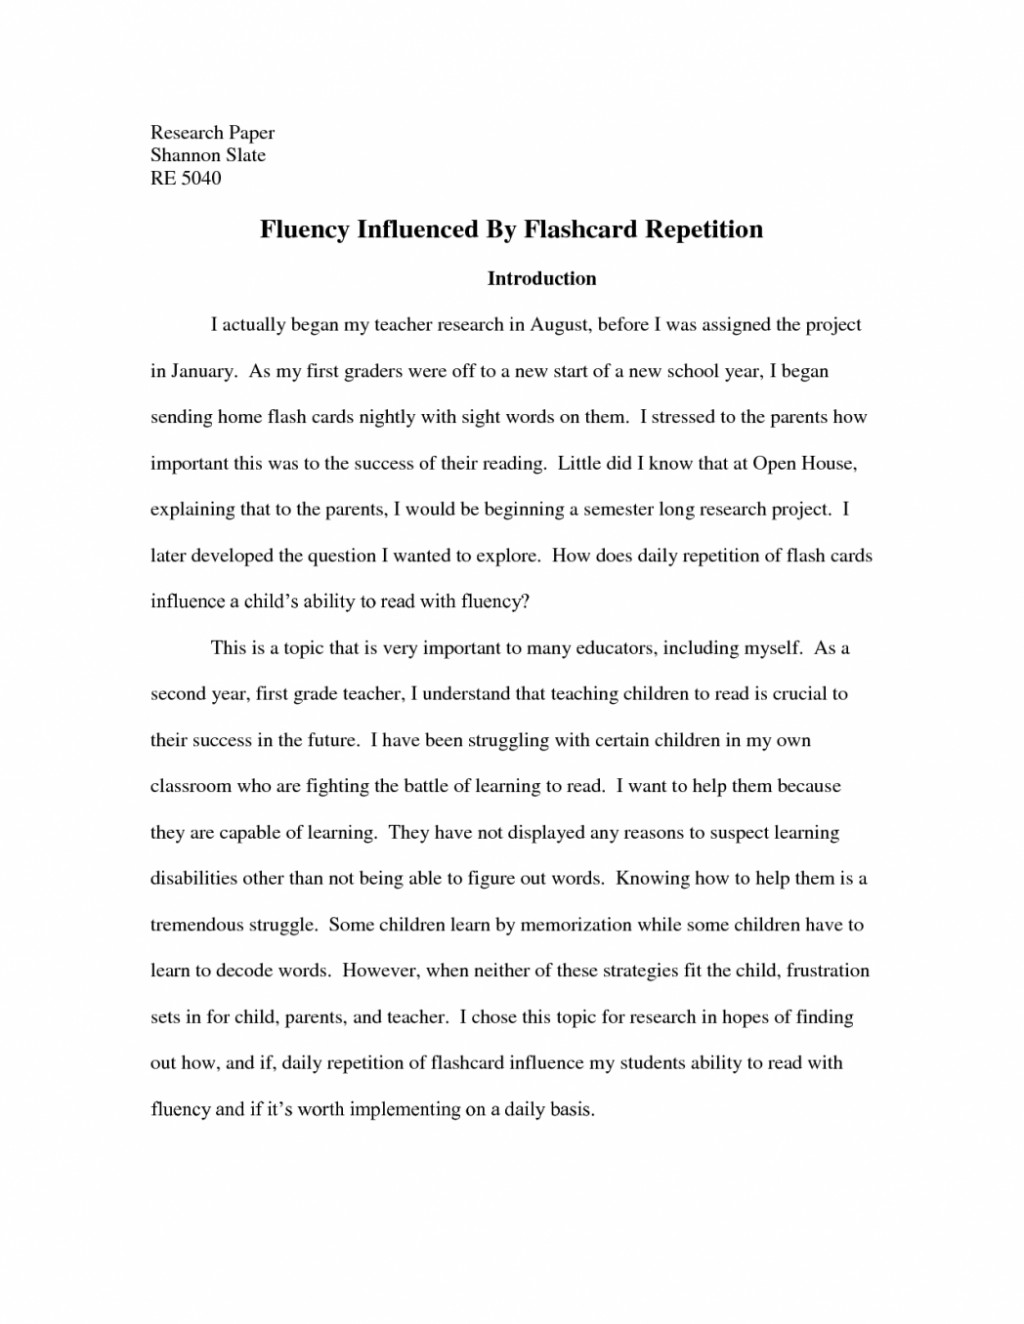 009 Words To Start Off Essay Begin Paragraph In An Argumentative Conclusion Persuasive End The First Body Sentence 1048x1356 Example Excellent How With A Question Write Narrative About Your Life Out Yourself Large